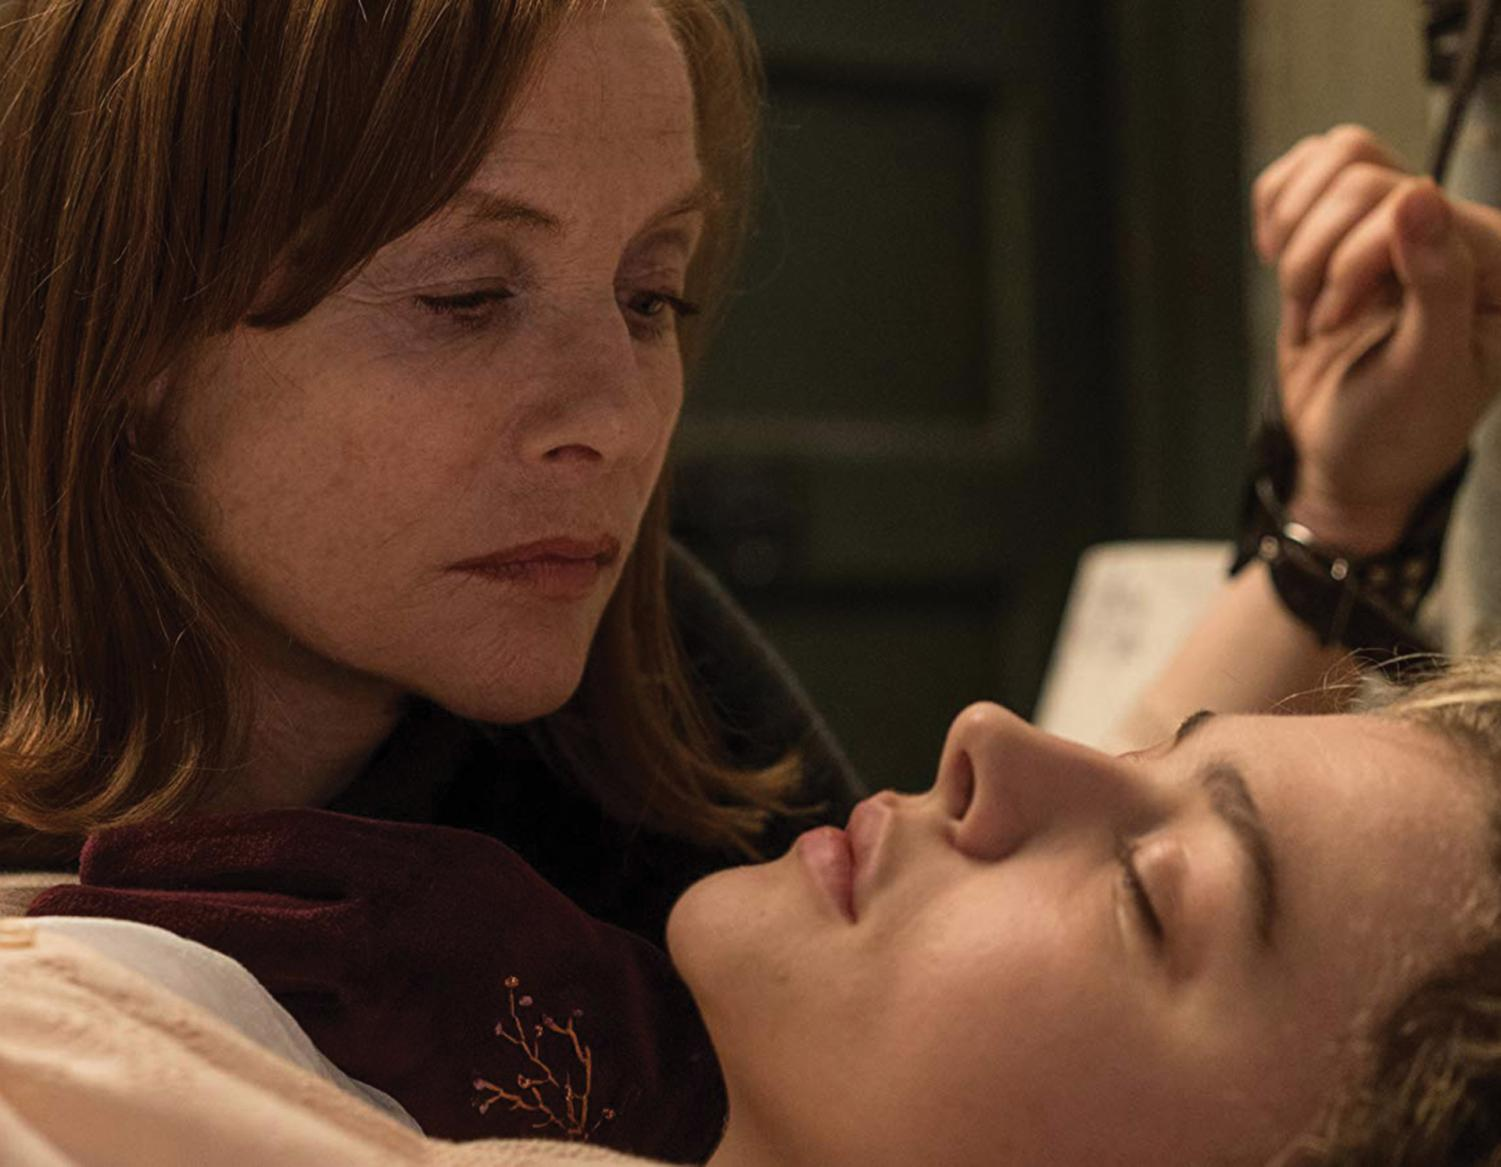 Isabelle Huppert and Chloe Grace Moretz star in 'Greta,' a drama thriller directed by Neil Jordan. The film received a 54-percent Rotten Tomatoes rating.